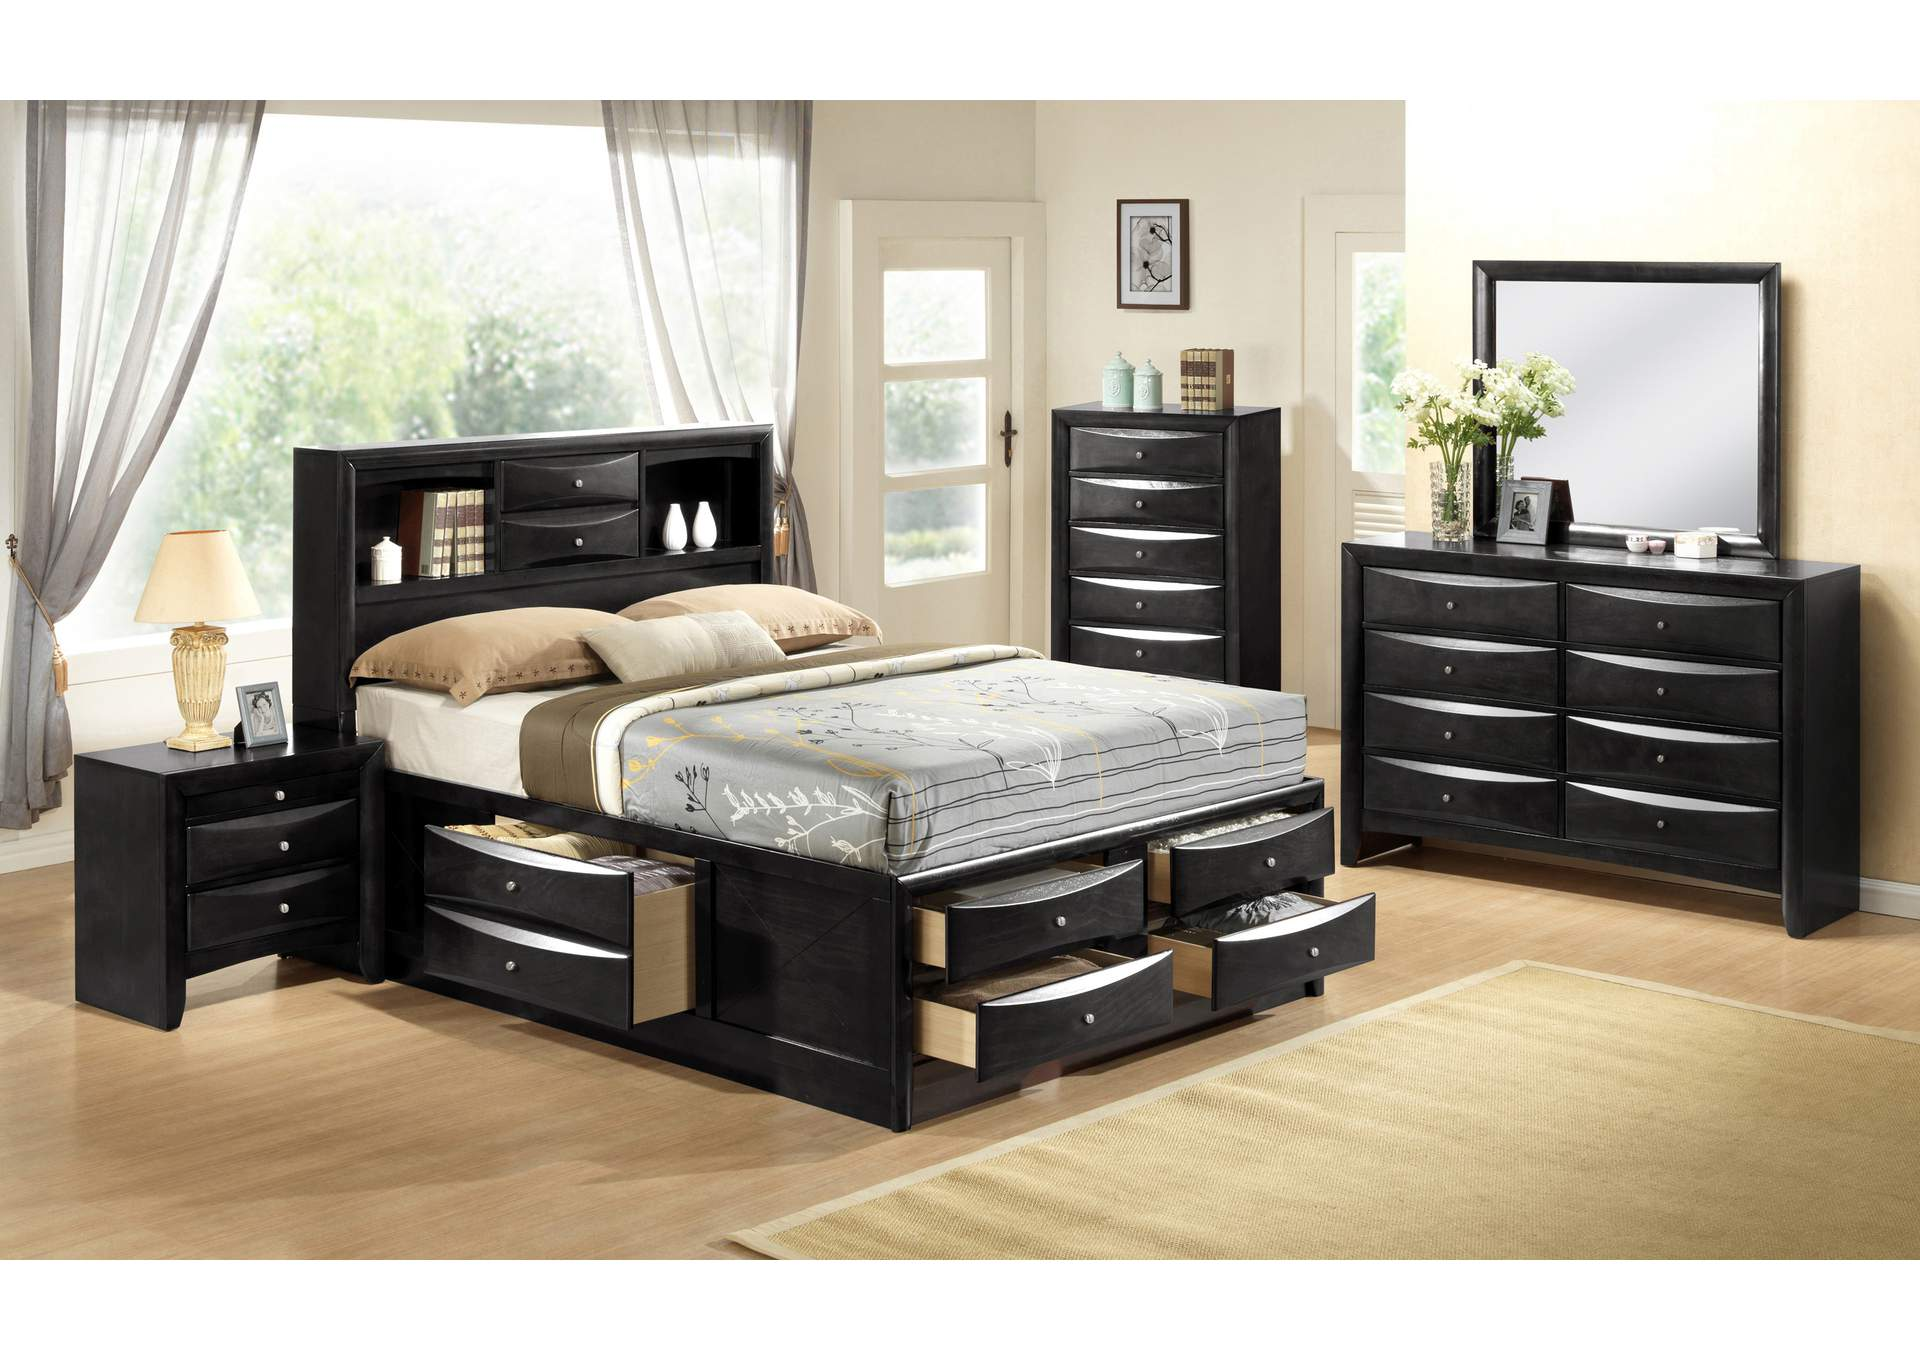 Emily Black Queen Captains Bed w/8 Drawer Dresser, Mirror and Nightstand,Crown Mark